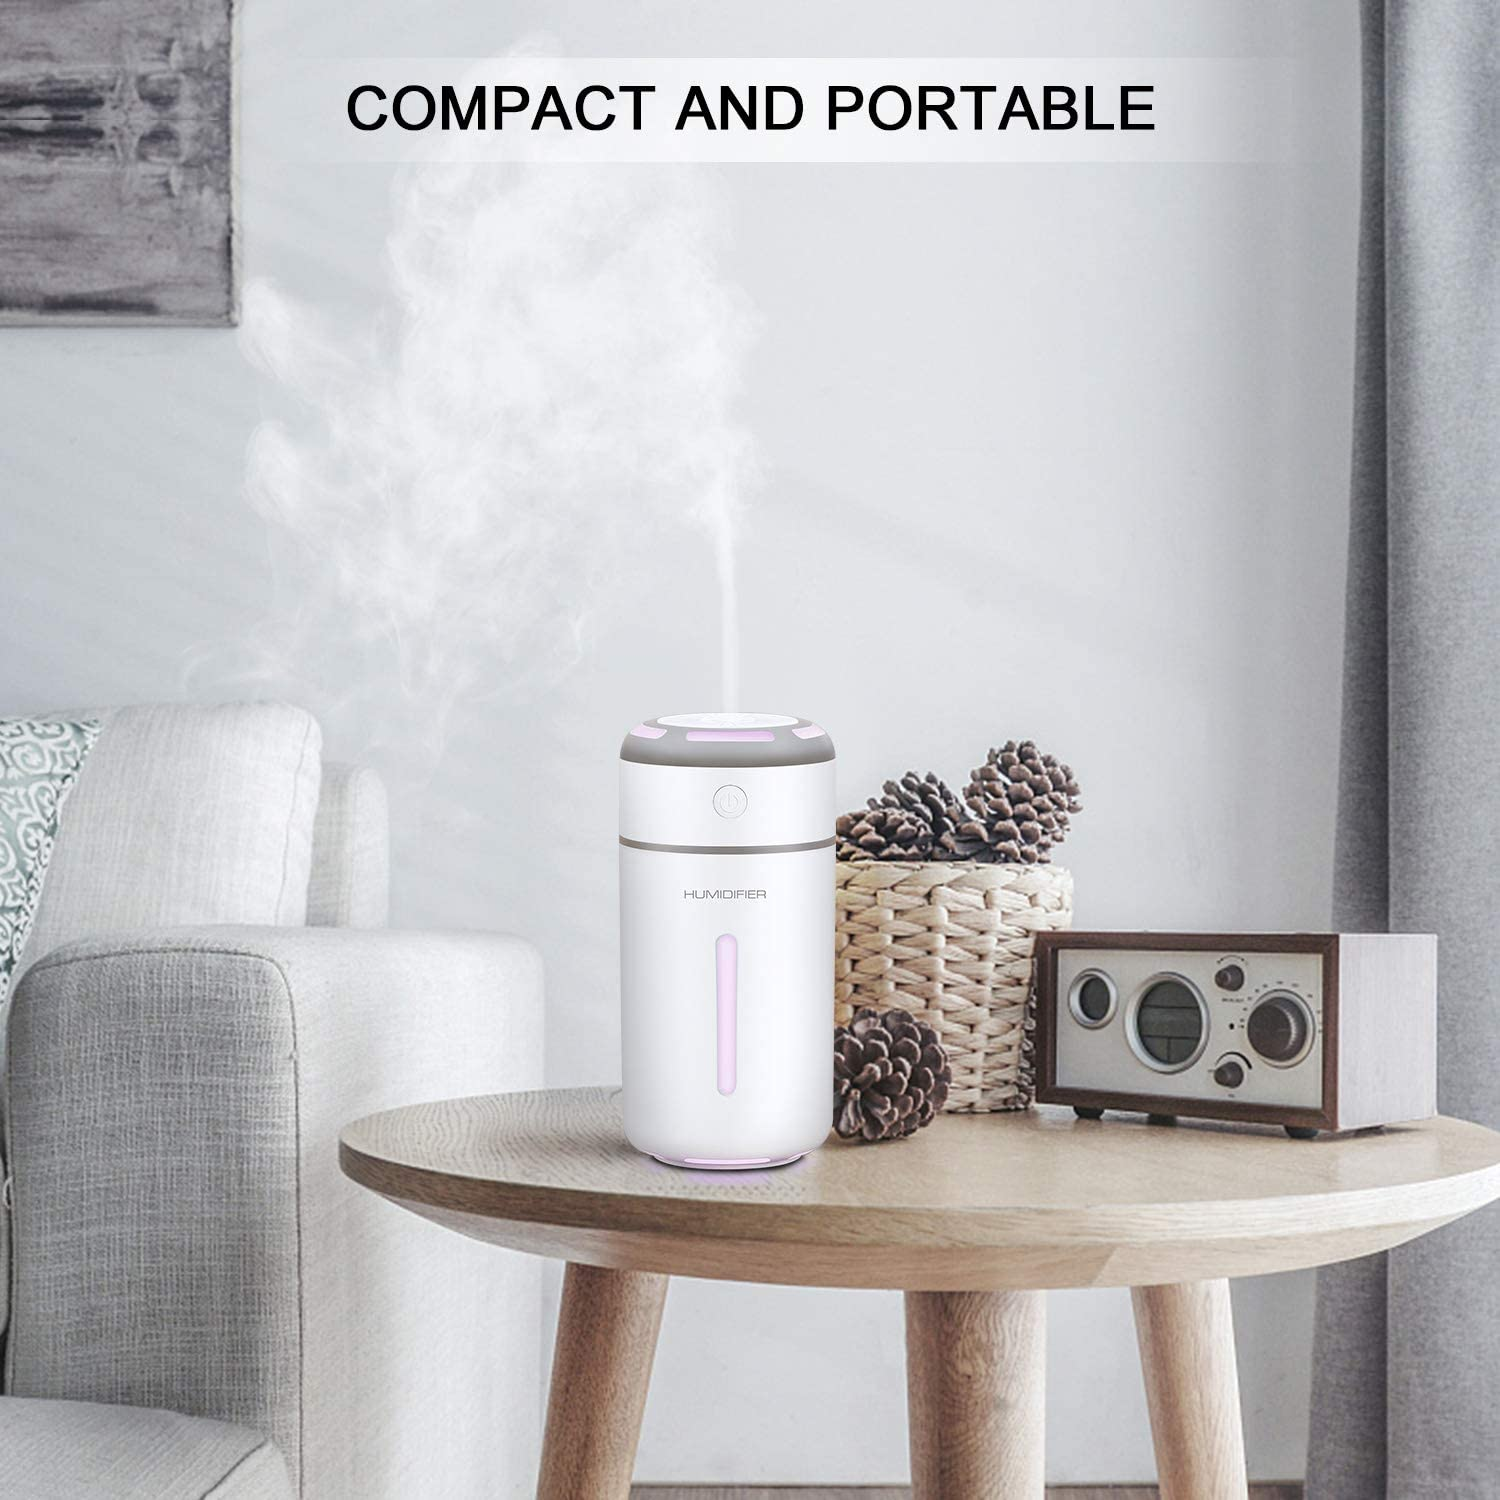 MADETEC Ultrasonic Cool Mist Humidifier Portable Mini USB Air Humidifier for Car Travel Office Baby Bedroom Home with 7 Colors Night Light and Auto